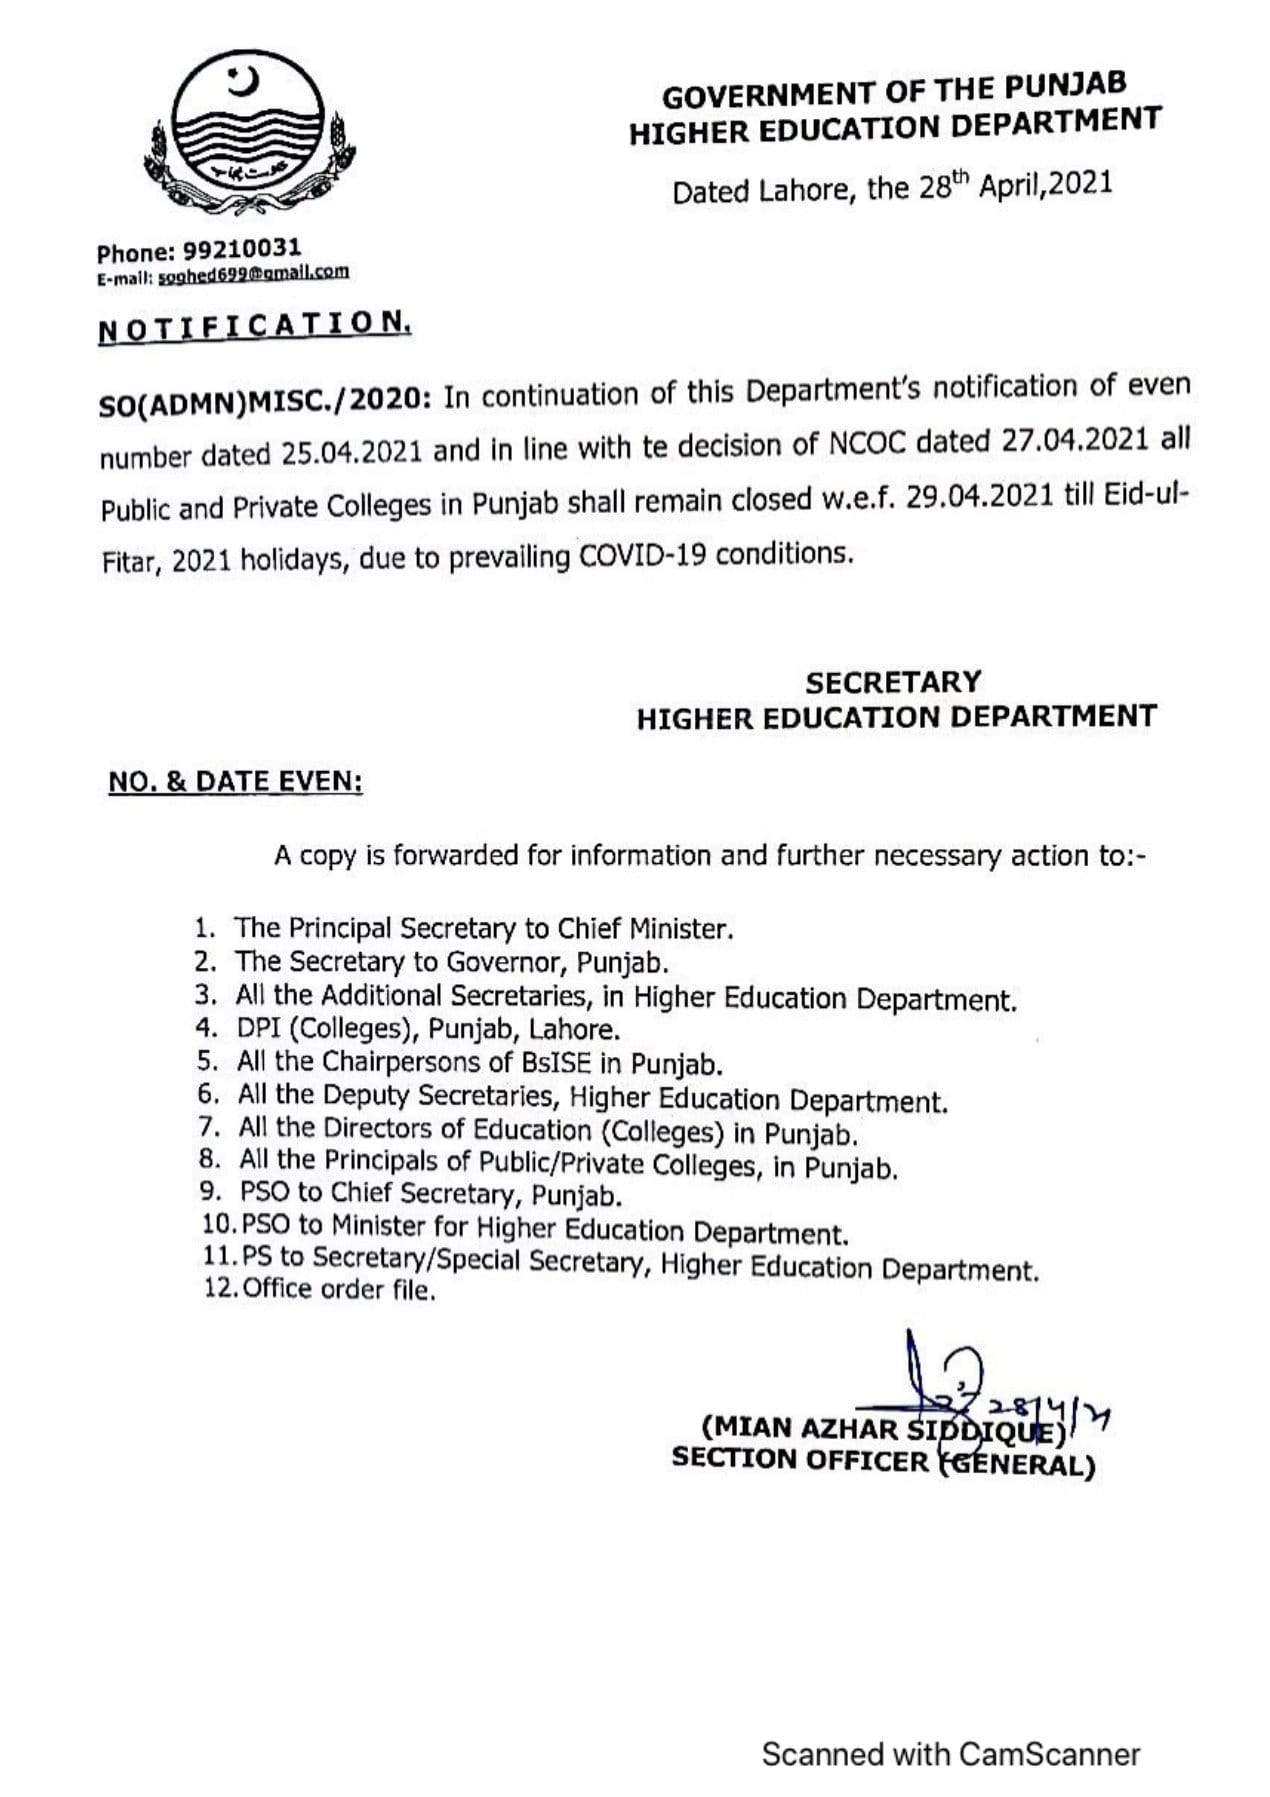 HED Punjab Notification of Closing All Punjab Educational Institutions